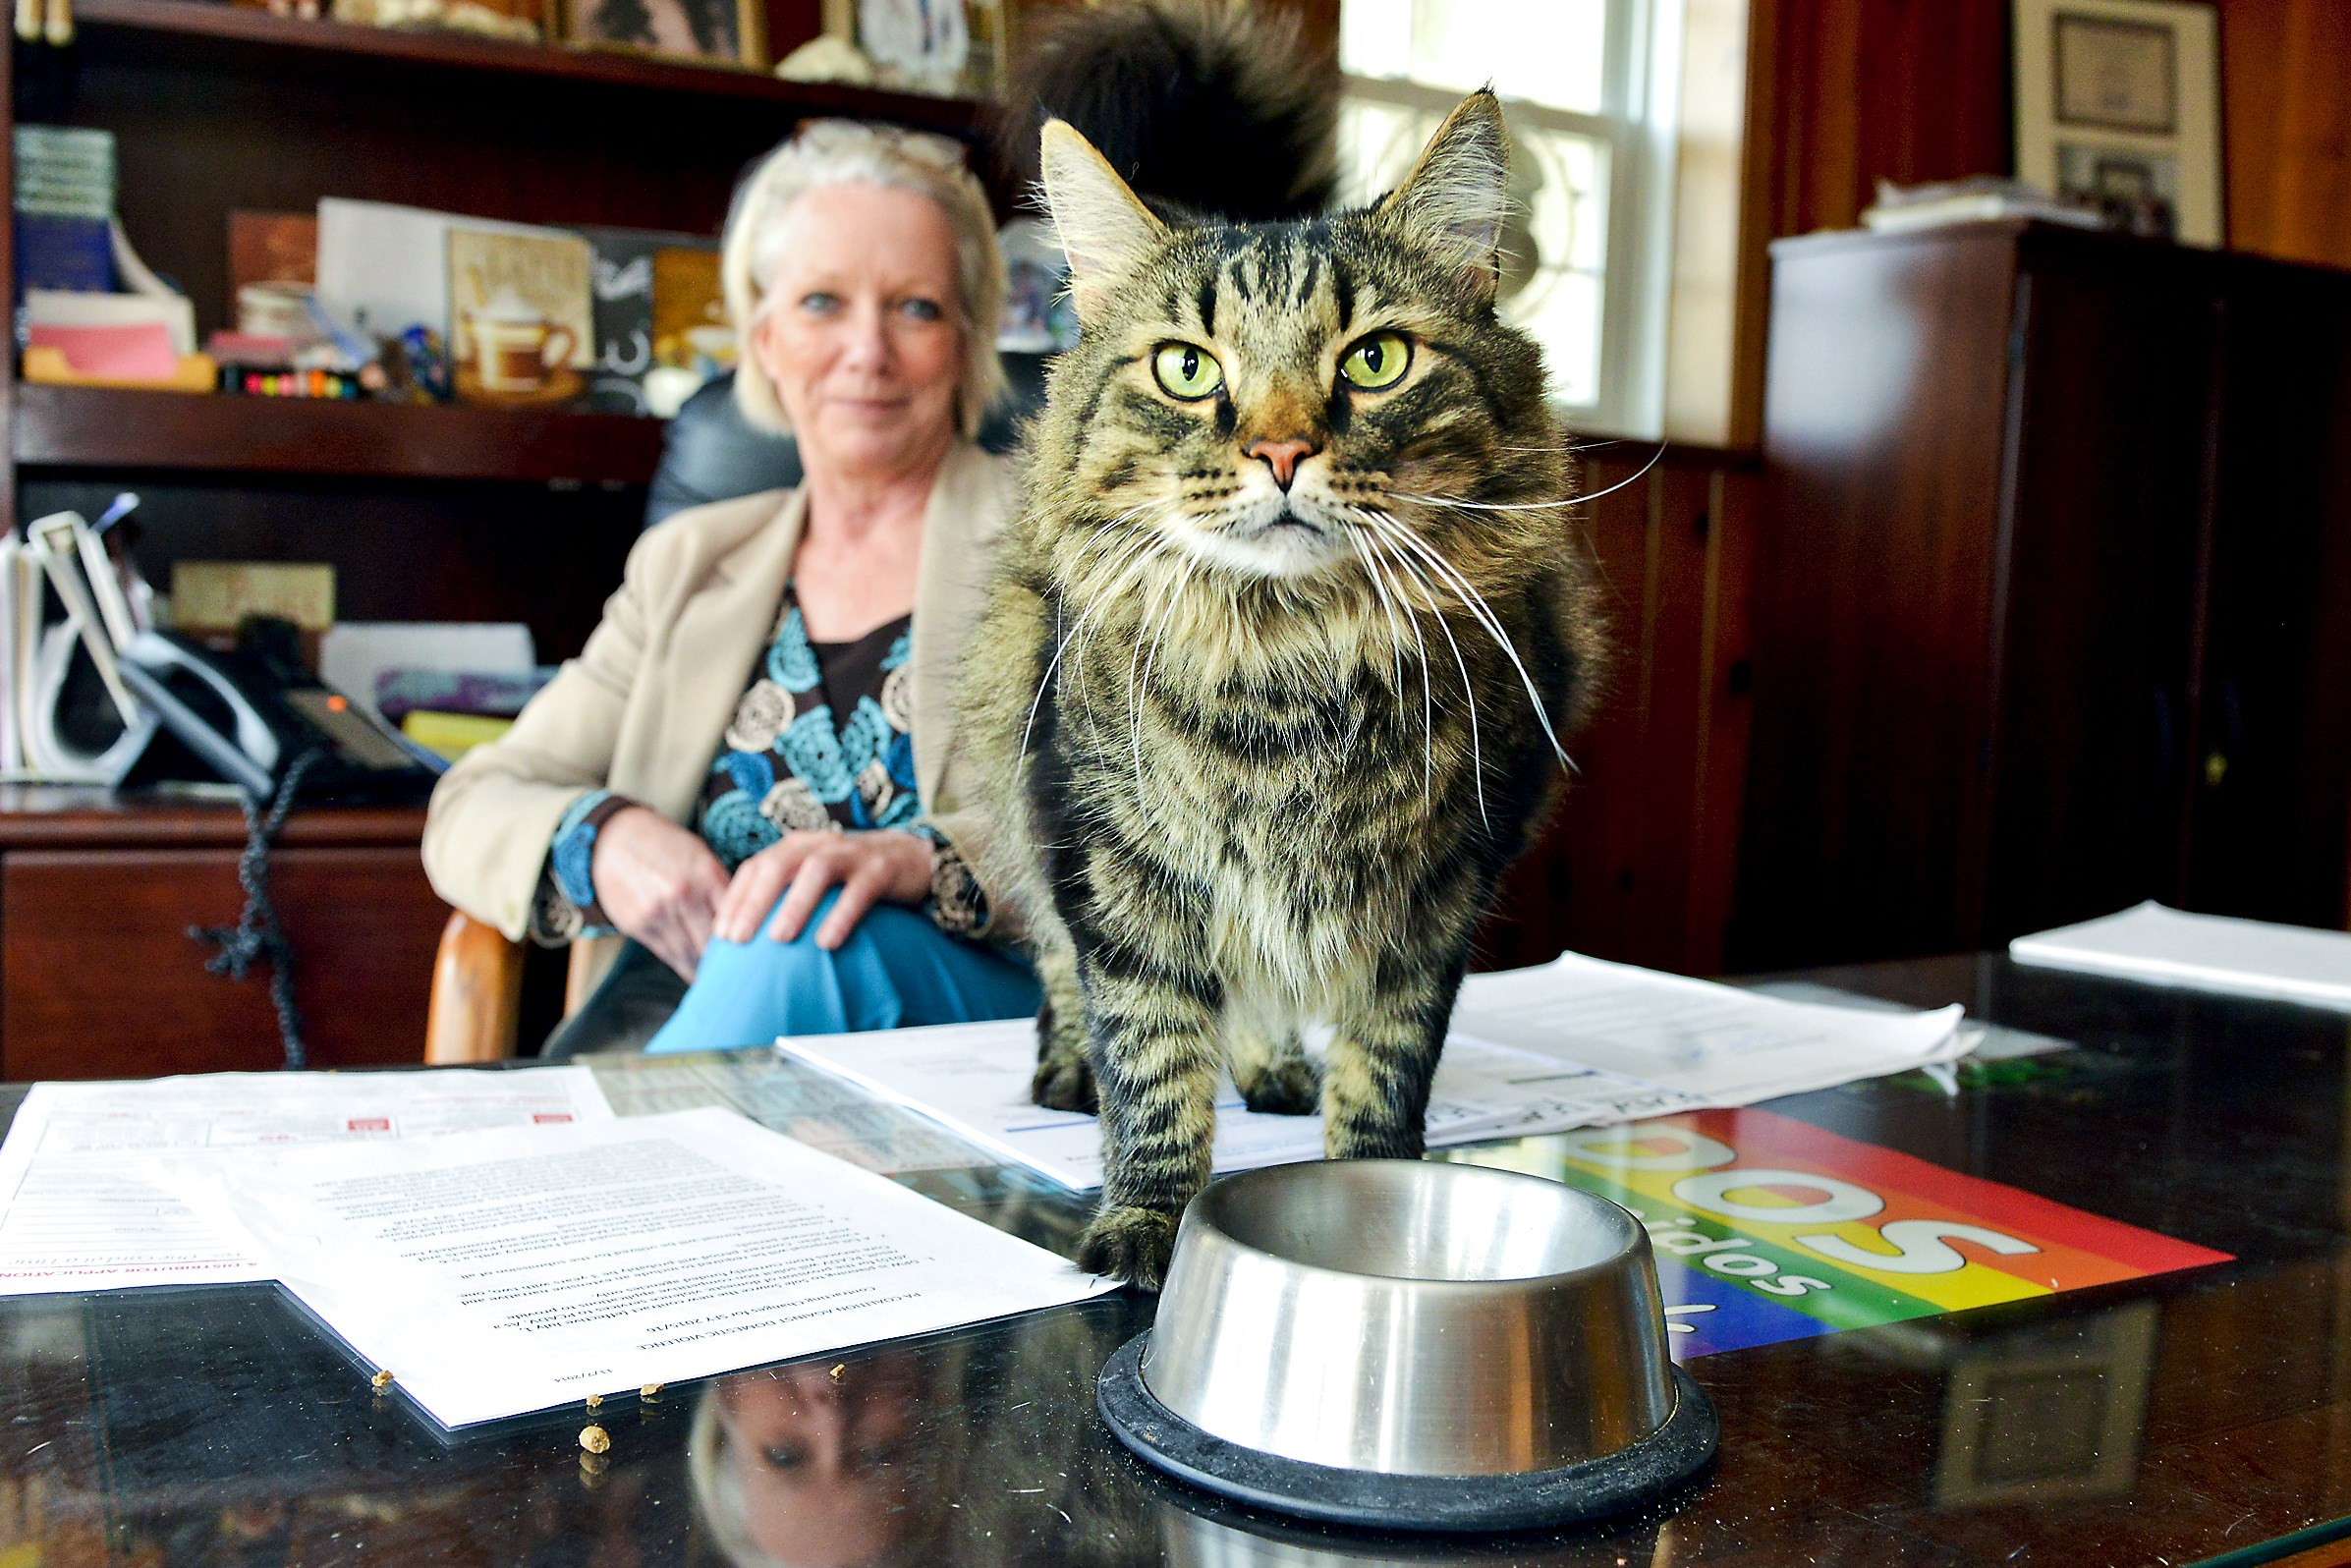 Michelle Bond, executive director of HOPE Center in Tarentum, shares her office with Logan, a Maine coon cat she rescued.  HOPE Center is one of only three shelters for victims of domestic violence in Pennsylvania that allow women to bring their pets.  Logan is up for adoption.